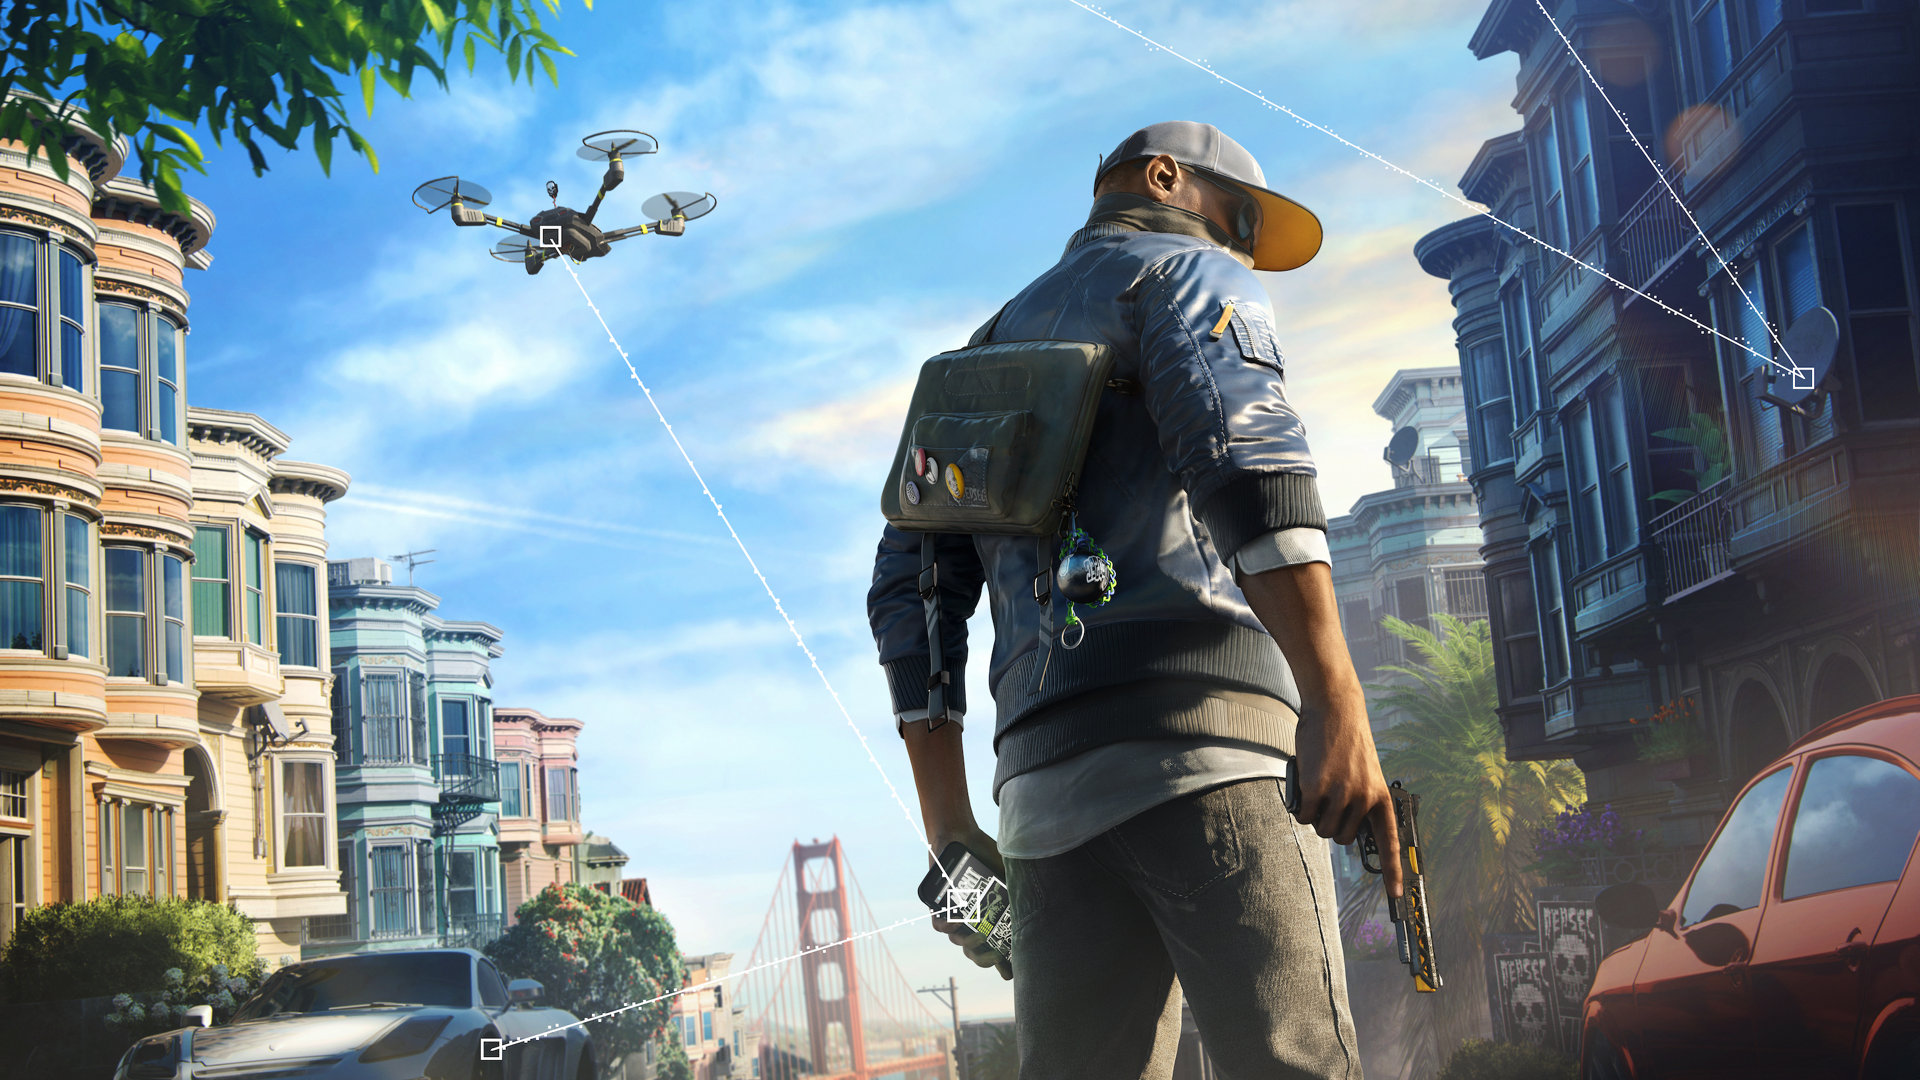 watch-dogs-2-background-art-03-ps4-us-21